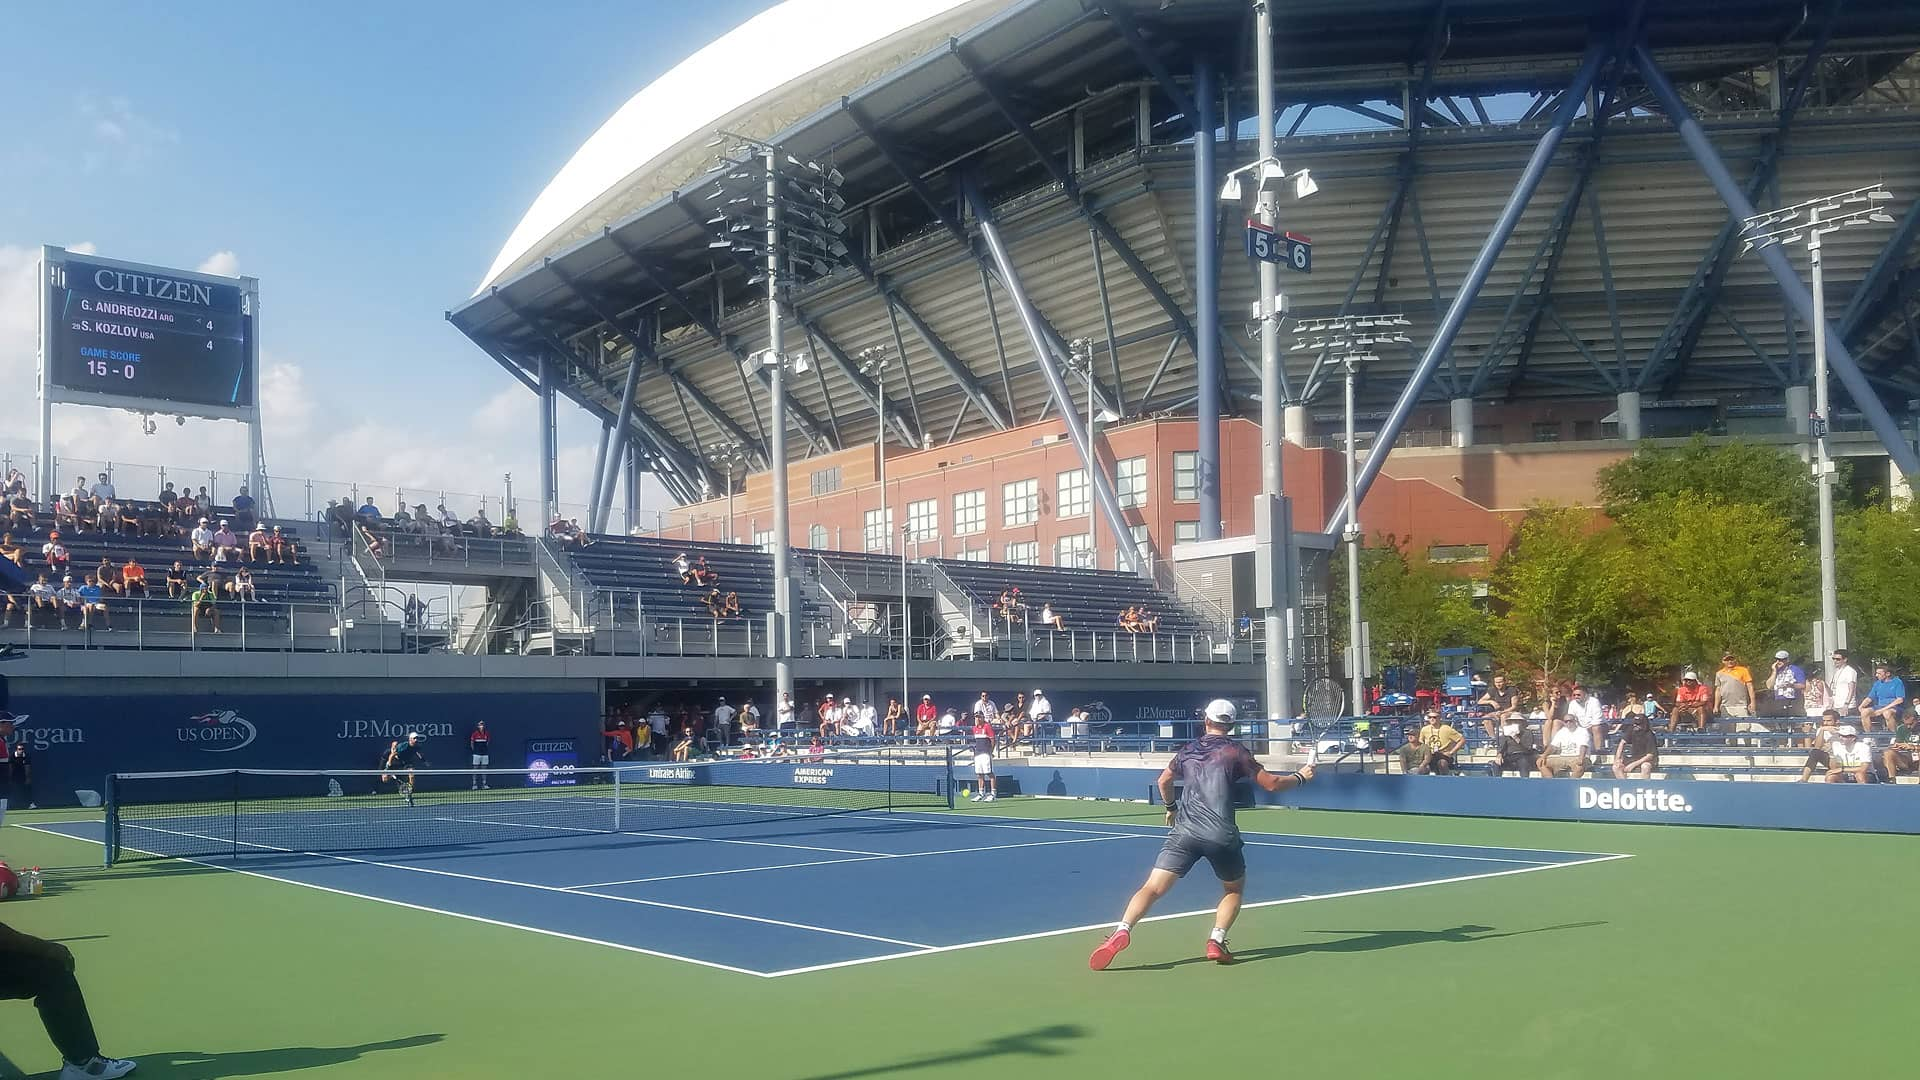 US Open Tennis Championships The Official Guide To New York City - Us open venue map